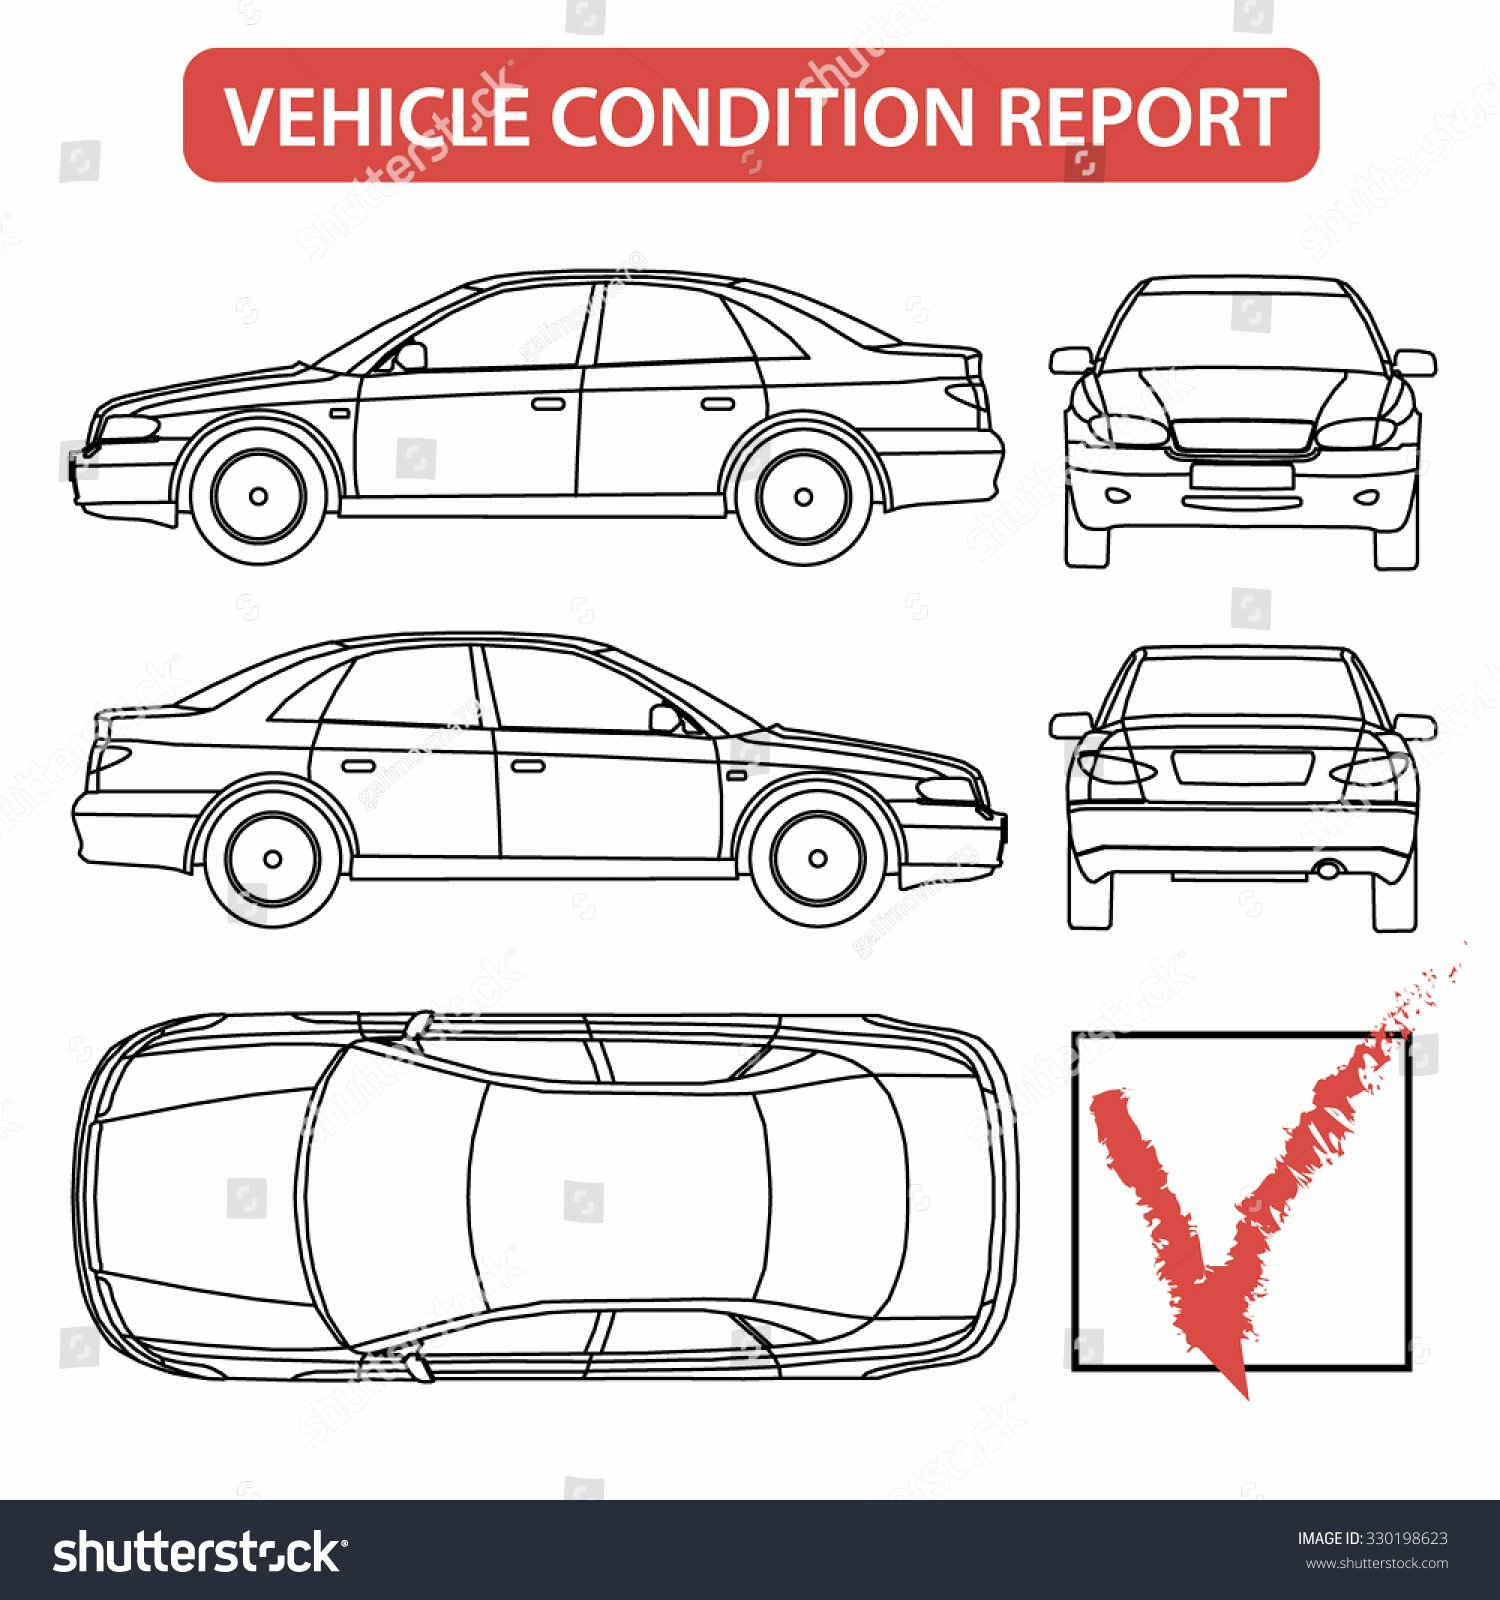 Automotive Inspection Checklist Template Beautiful Car Condition form Vehicle Checklist Auto Stock Vector